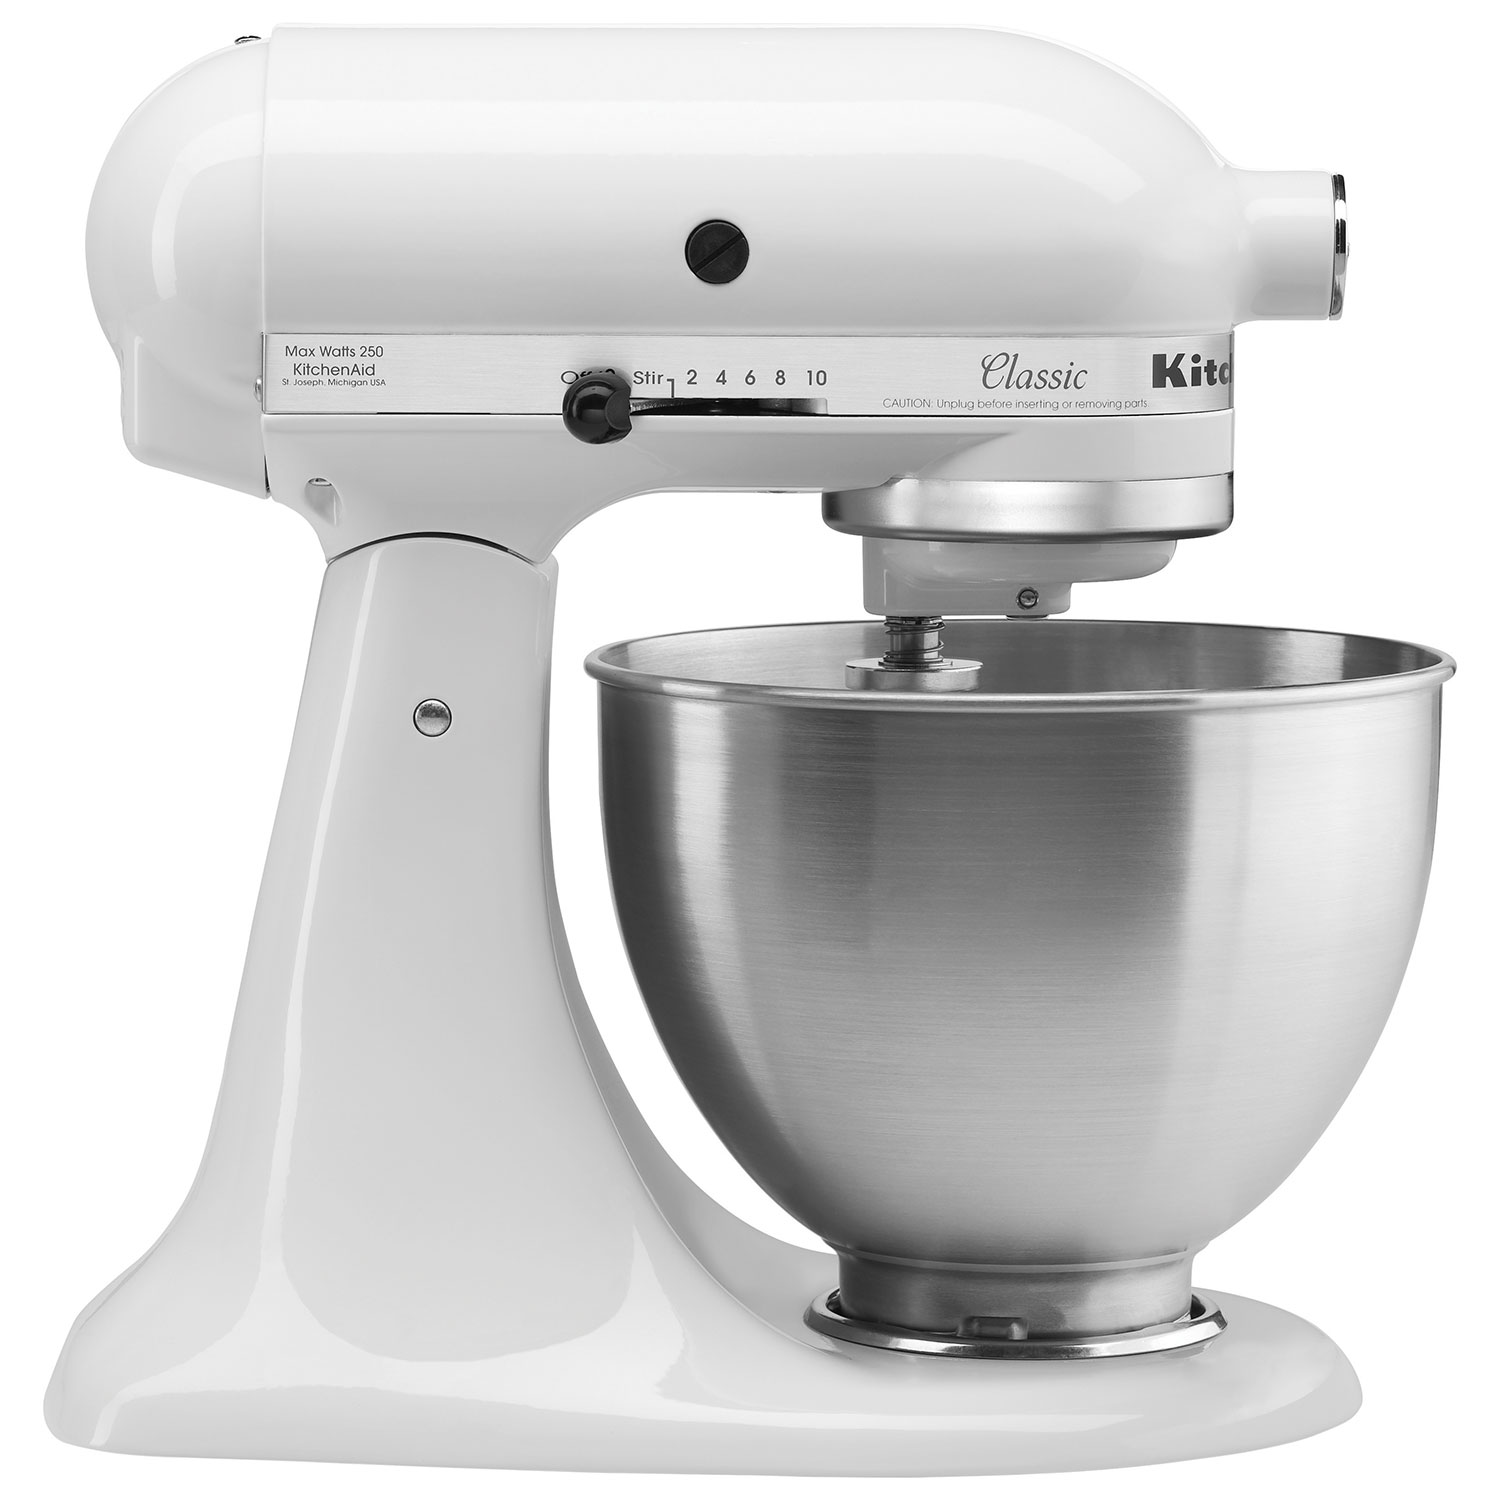 Exceptionnel KitchenAid Classic Stand Mixer   4.5Qt   250 Watt   White : Stand Mixers    Best Buy Canada